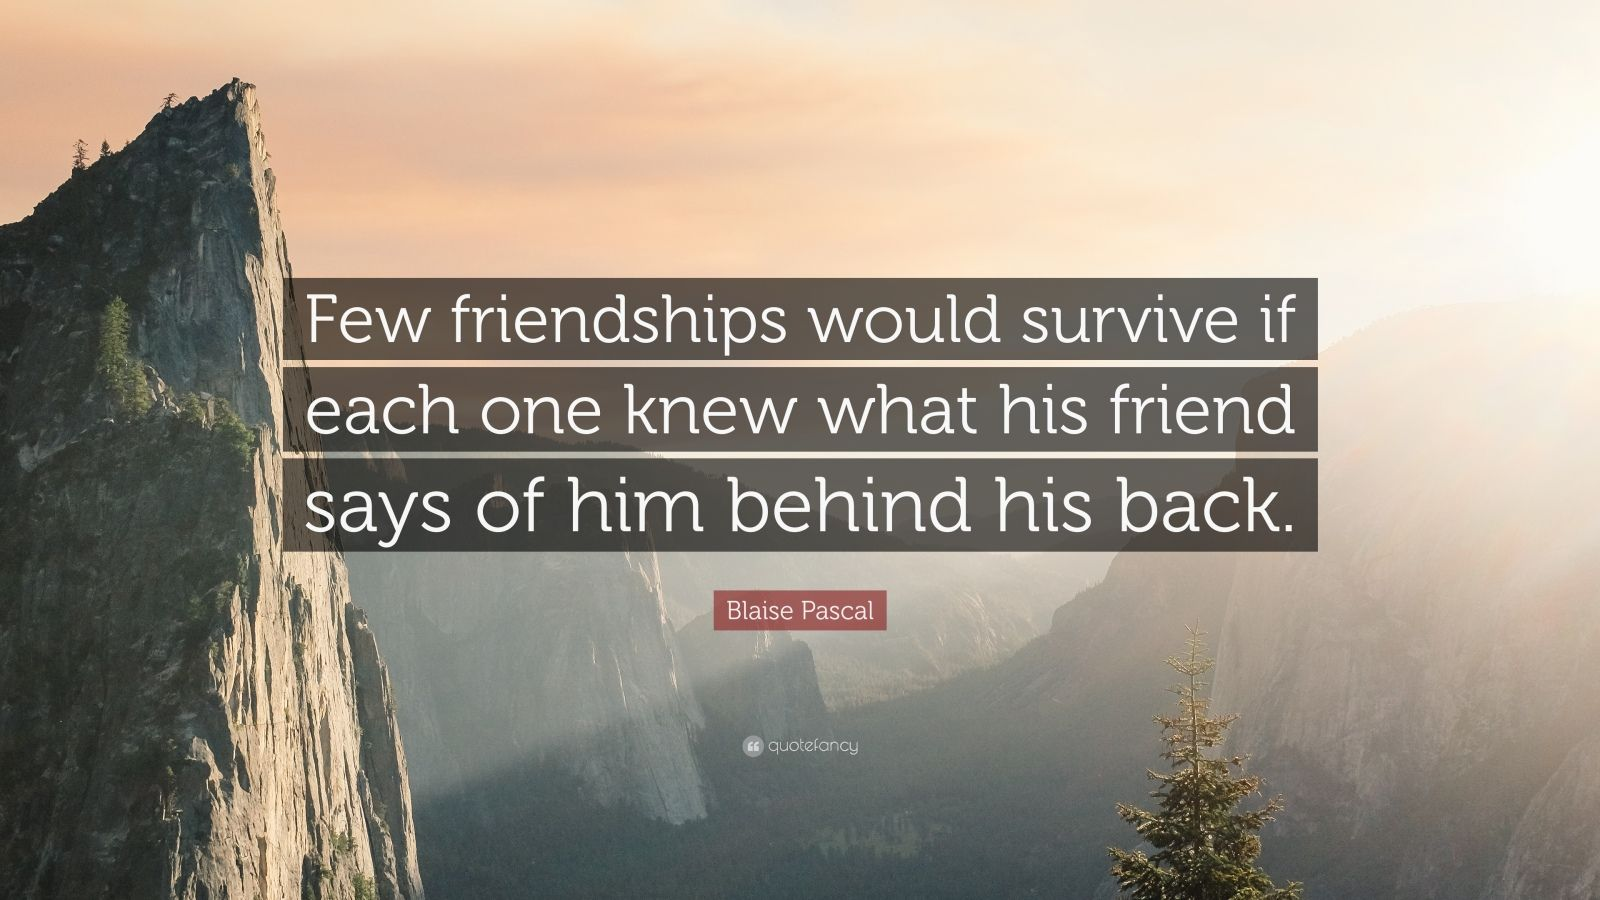 """Blaise Pascal Quote: """"Few friendships would survive if each one knew what his friend says of him behind his back."""""""